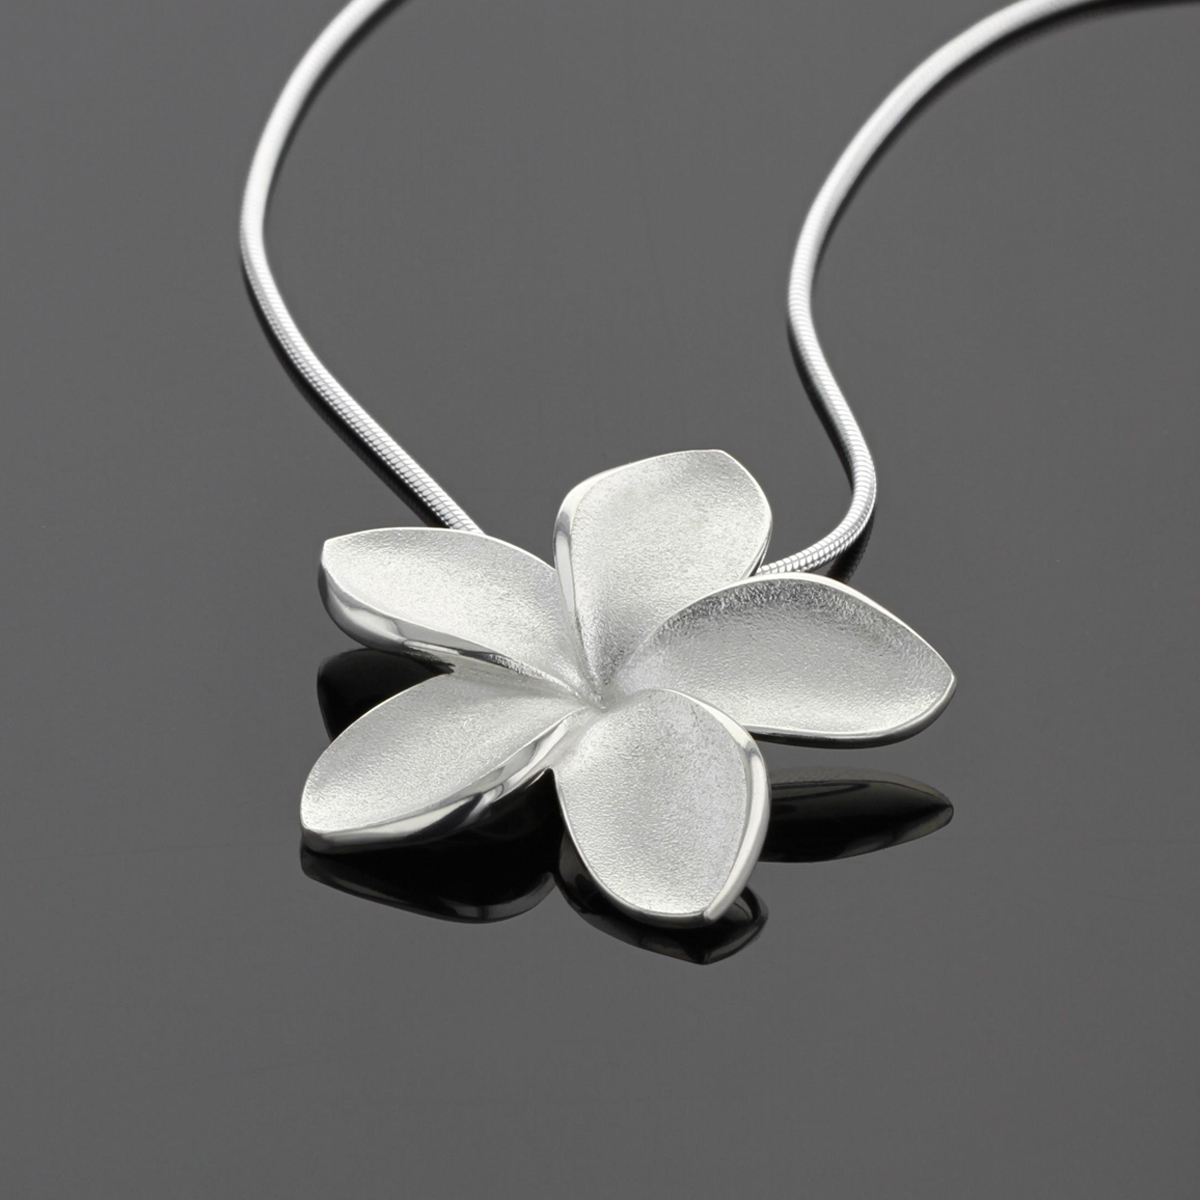 Frangipani collection made in Mauritius